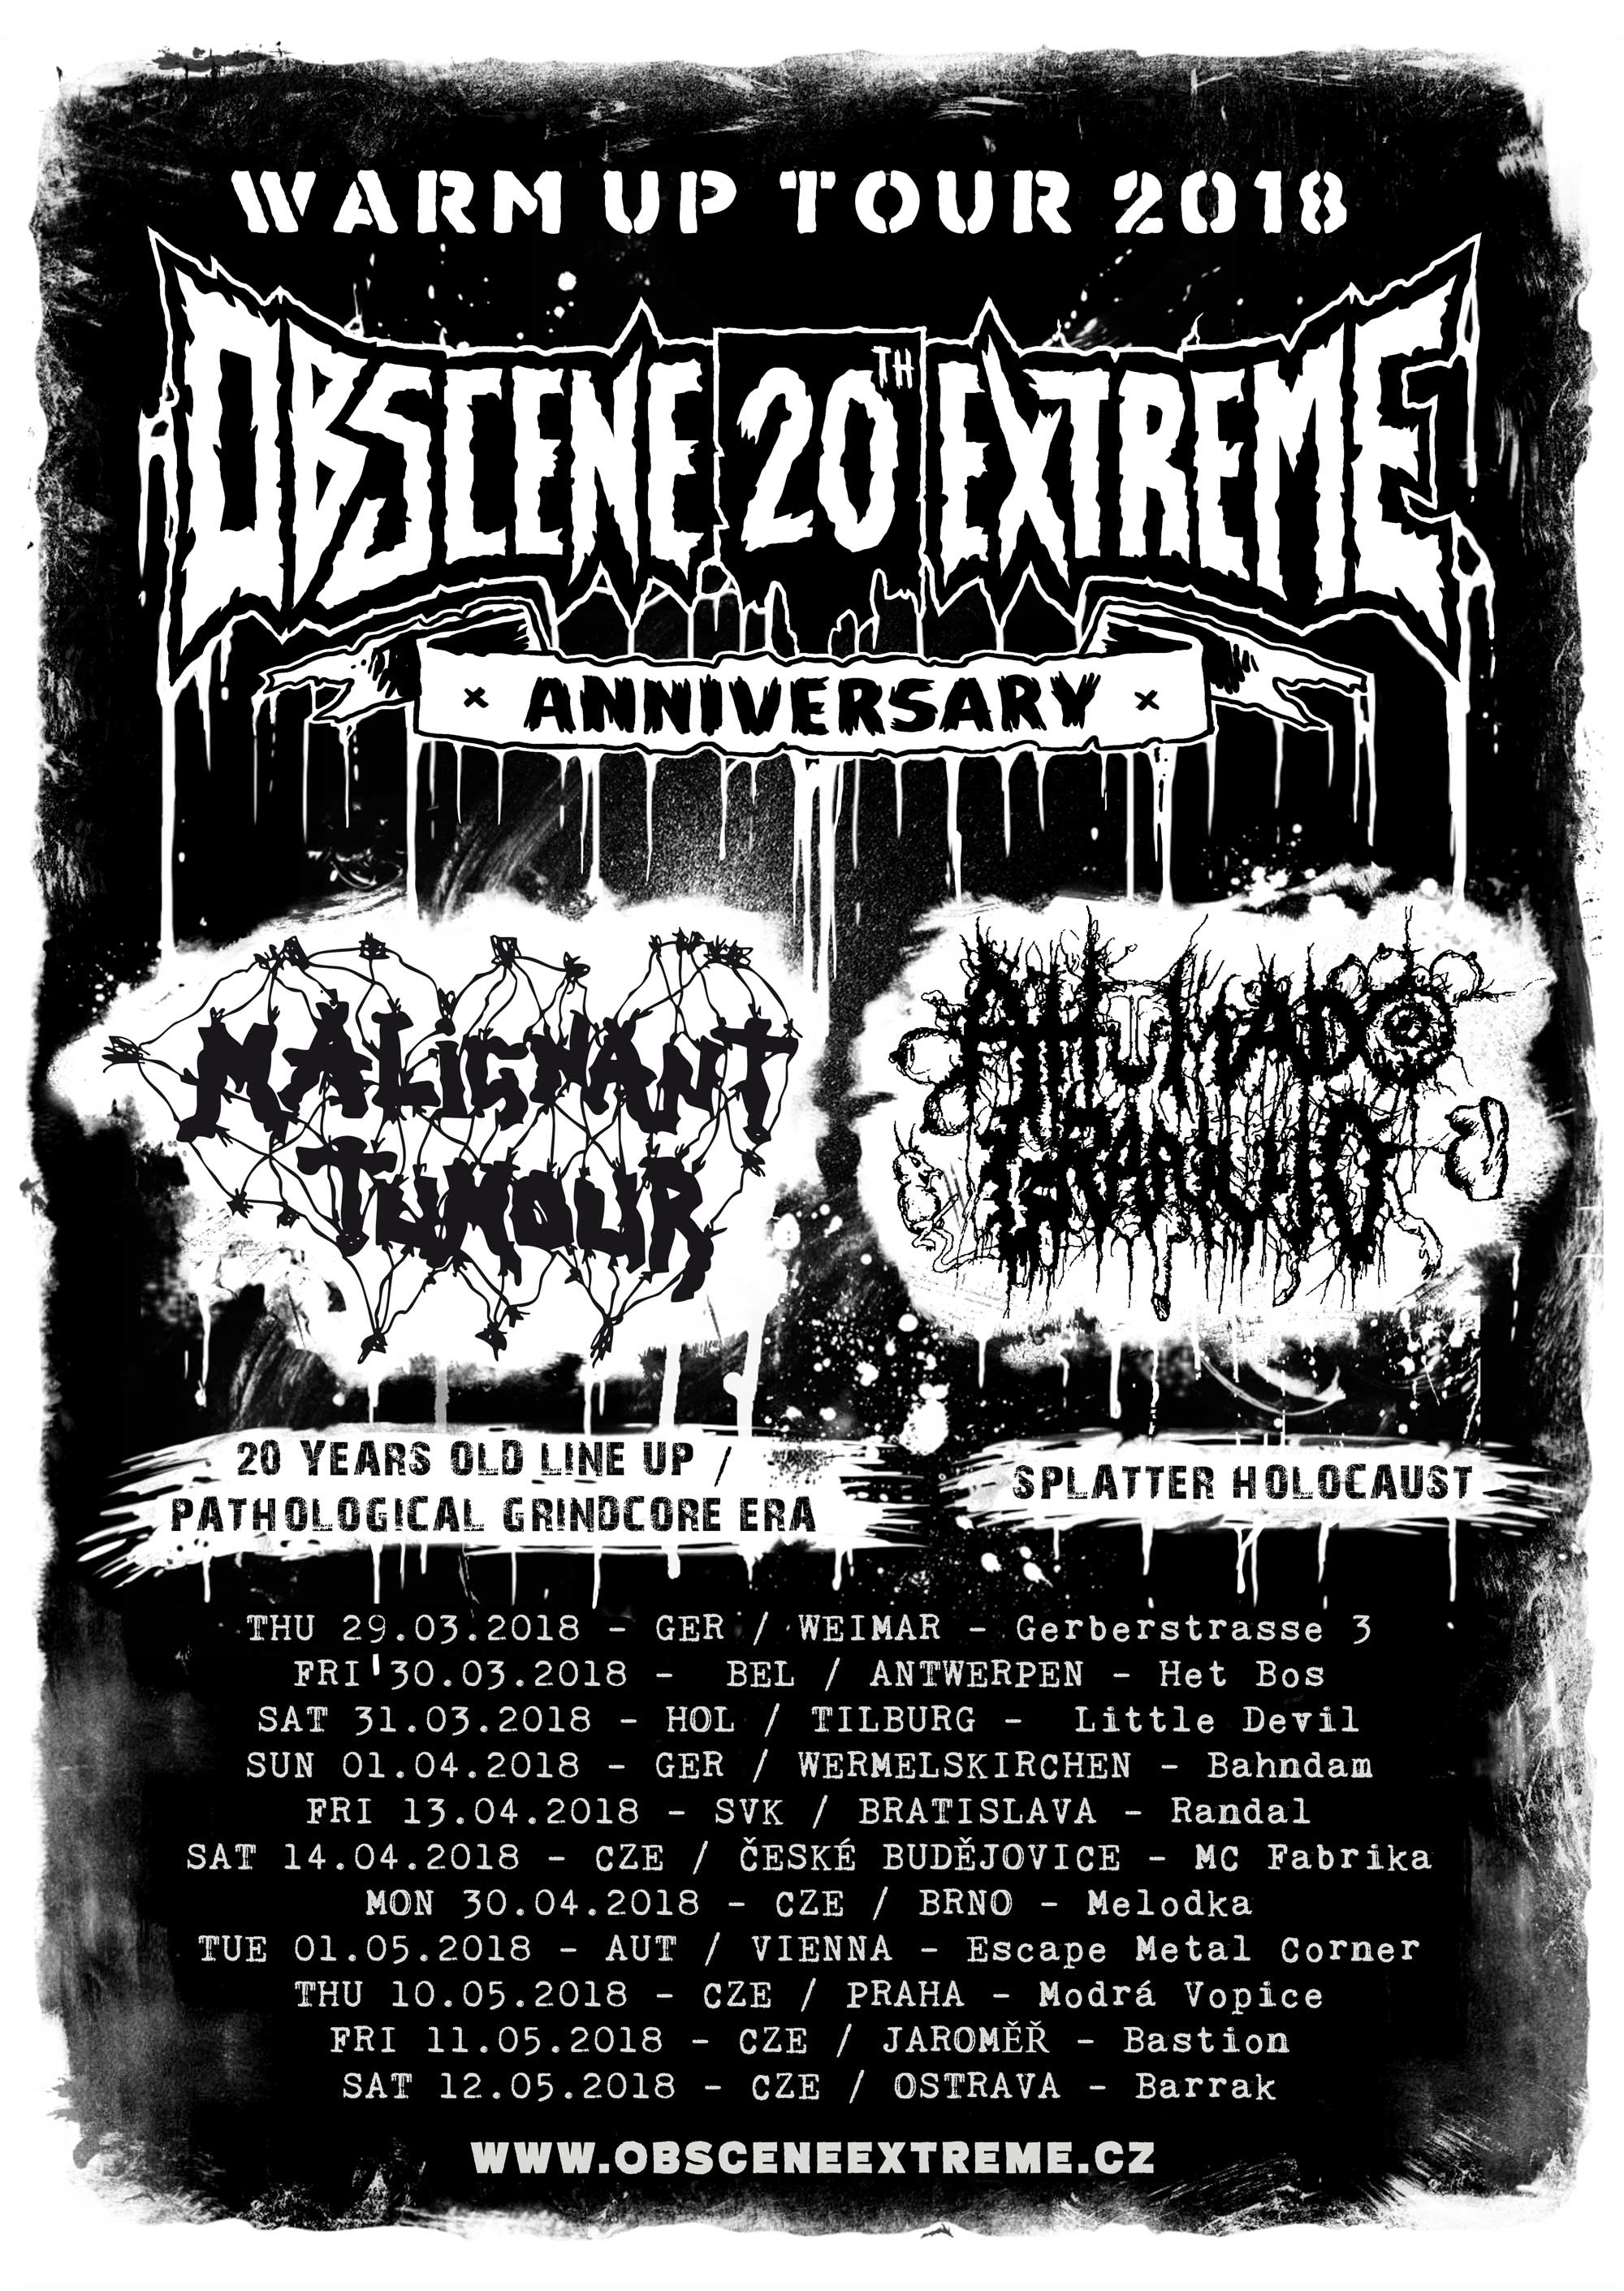 OBSCENE EXTREME 2018 WARM UP TOUR